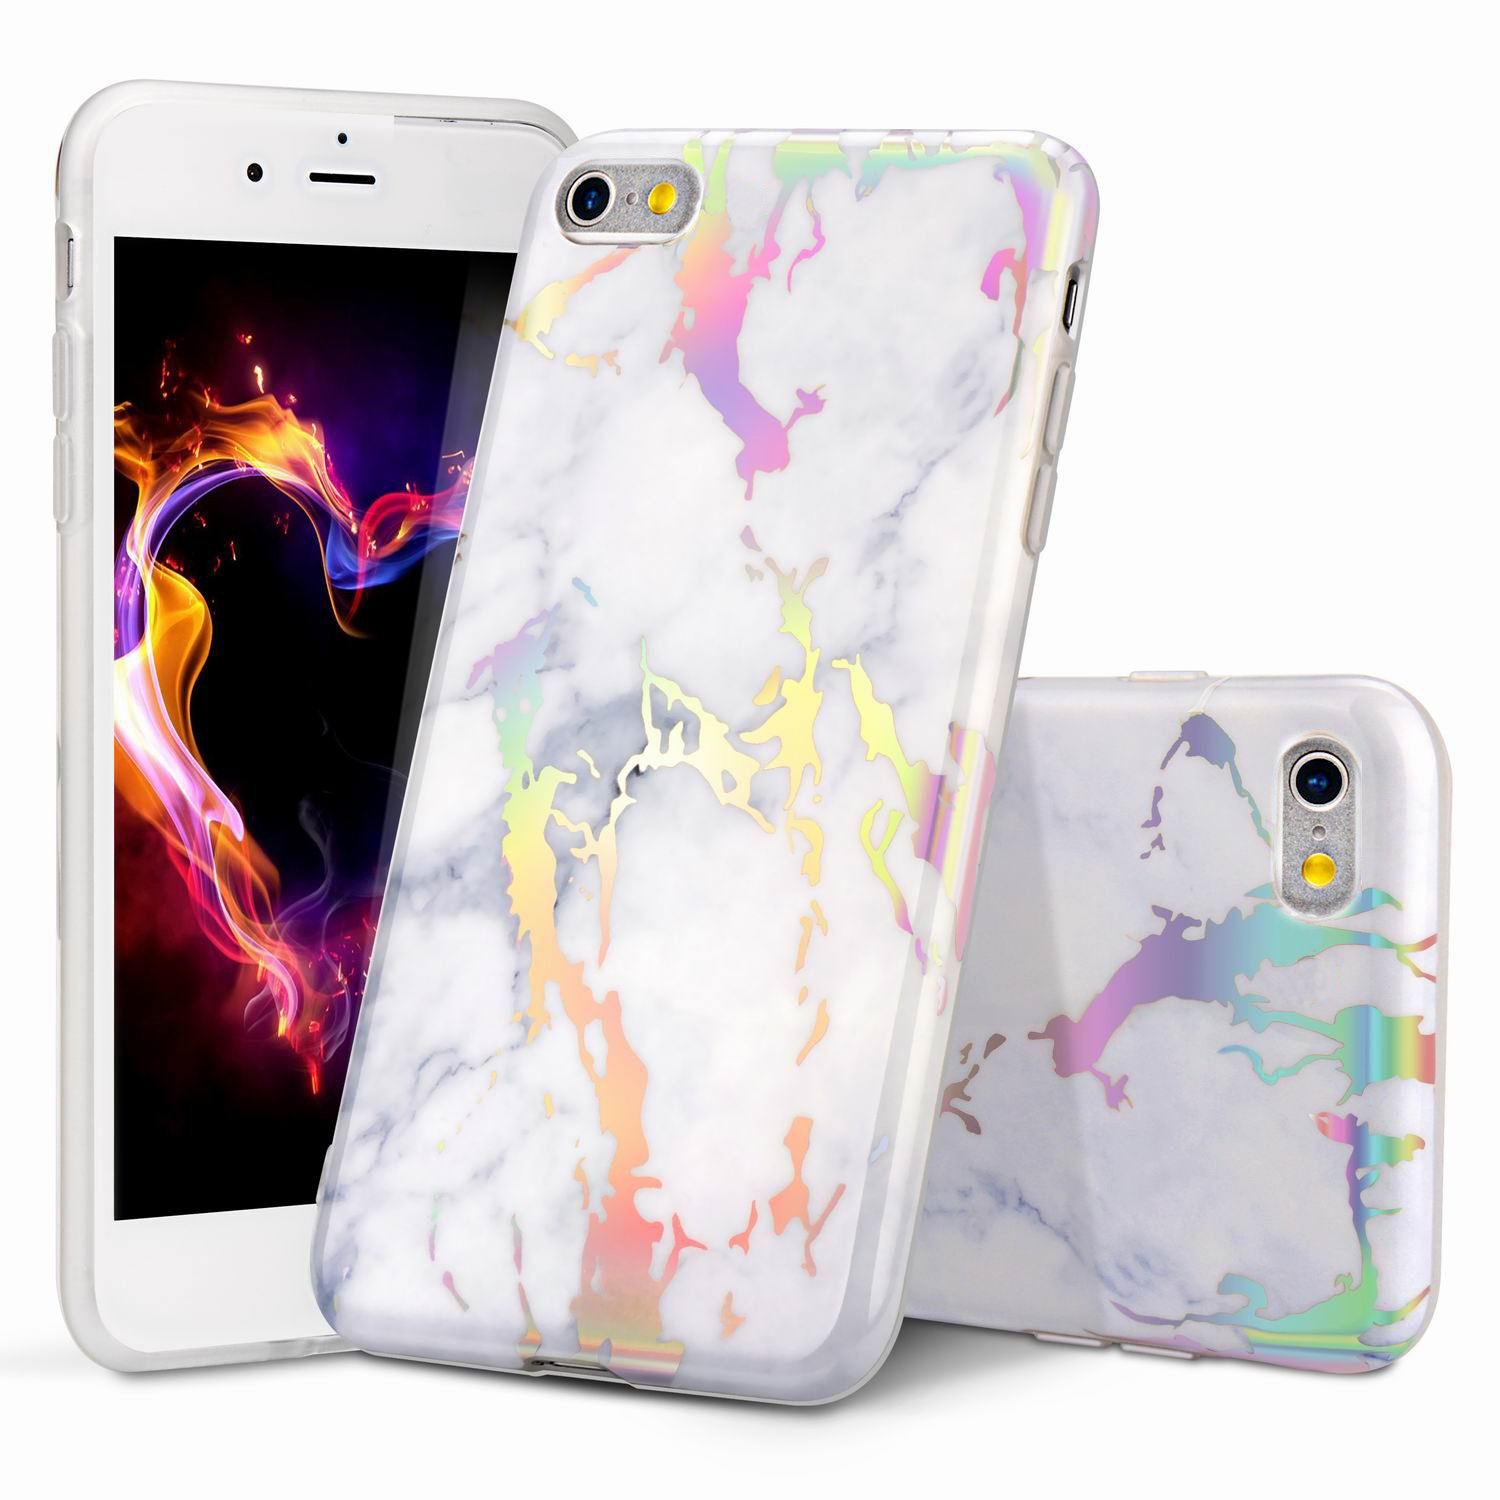 sneakers for cheap 1e22f 6799e WORLDMOM iPhone 6 Case, Holographic iPhone 6S Case, Colorful Laser  Holographic Flash Map Marble Shock Absorption Technology Bumper Soft TPU  Cover Case ...